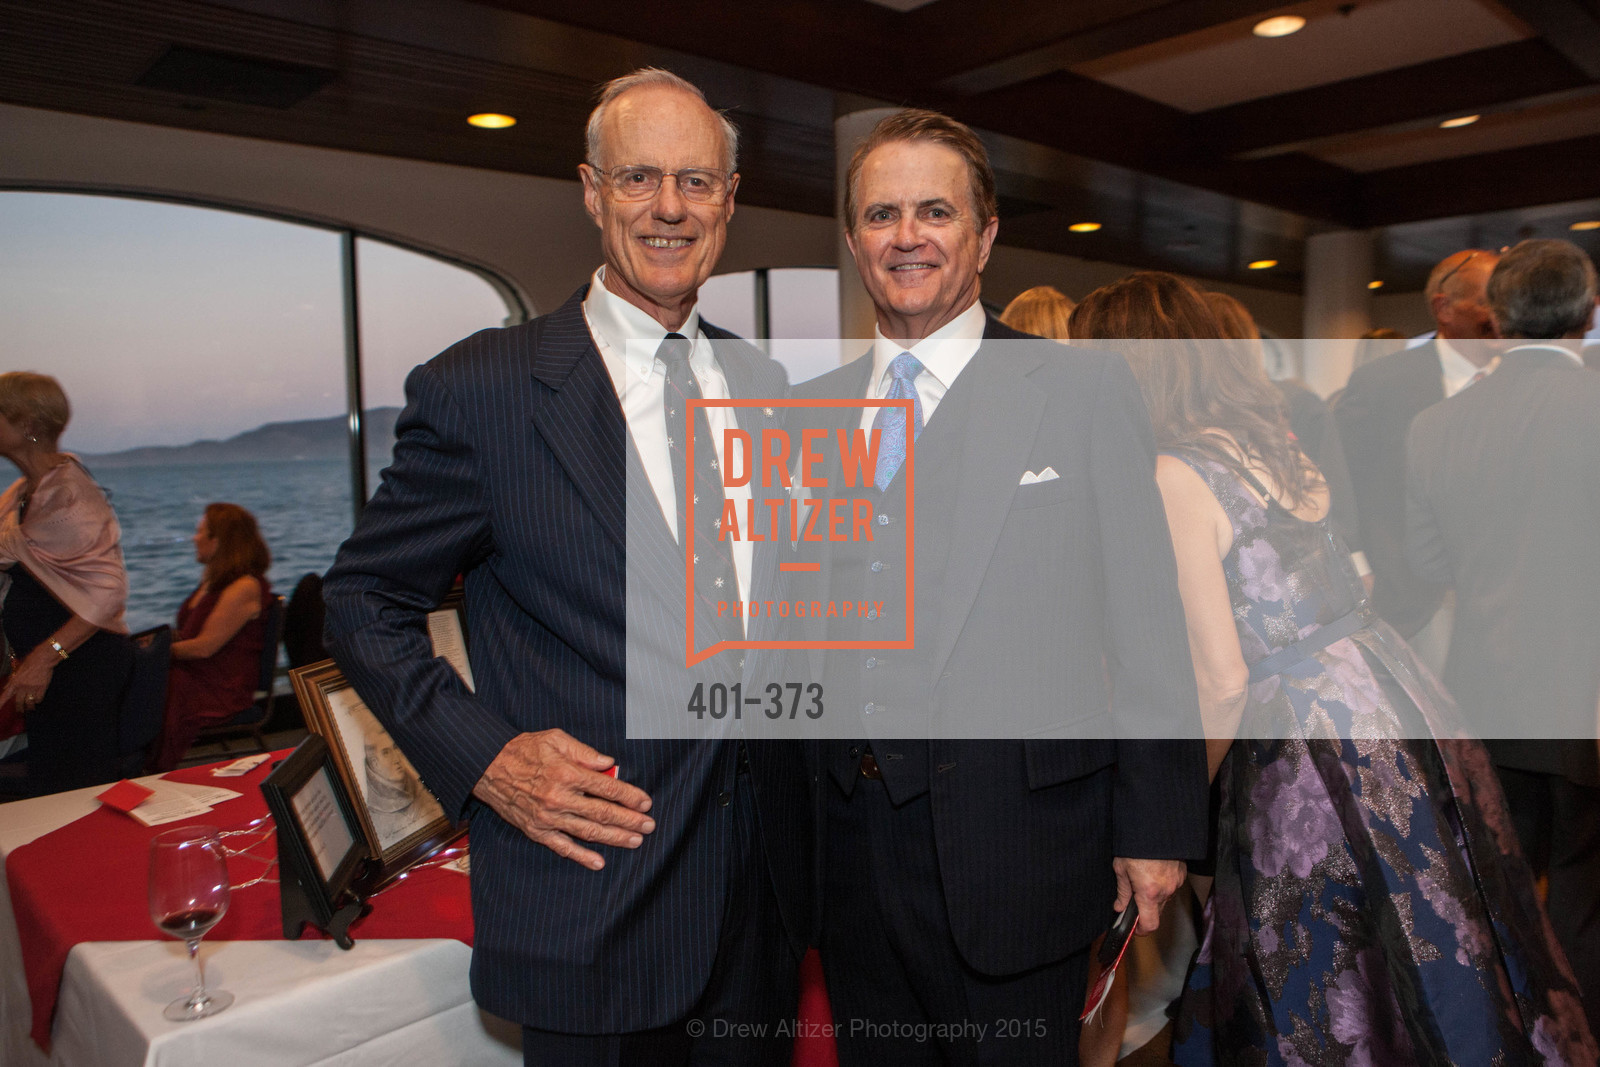 Bill Regan, Mark Tiernen, Sovereign Order of Malta Presents: A Knight for Champions, 7th Annual Silver Chalice Awards Dinner, St. Francis Yacht Club. 99 Yacht Rd, October 13th, 2015,Drew Altizer, Drew Altizer Photography, full-service agency, private events, San Francisco photographer, photographer california